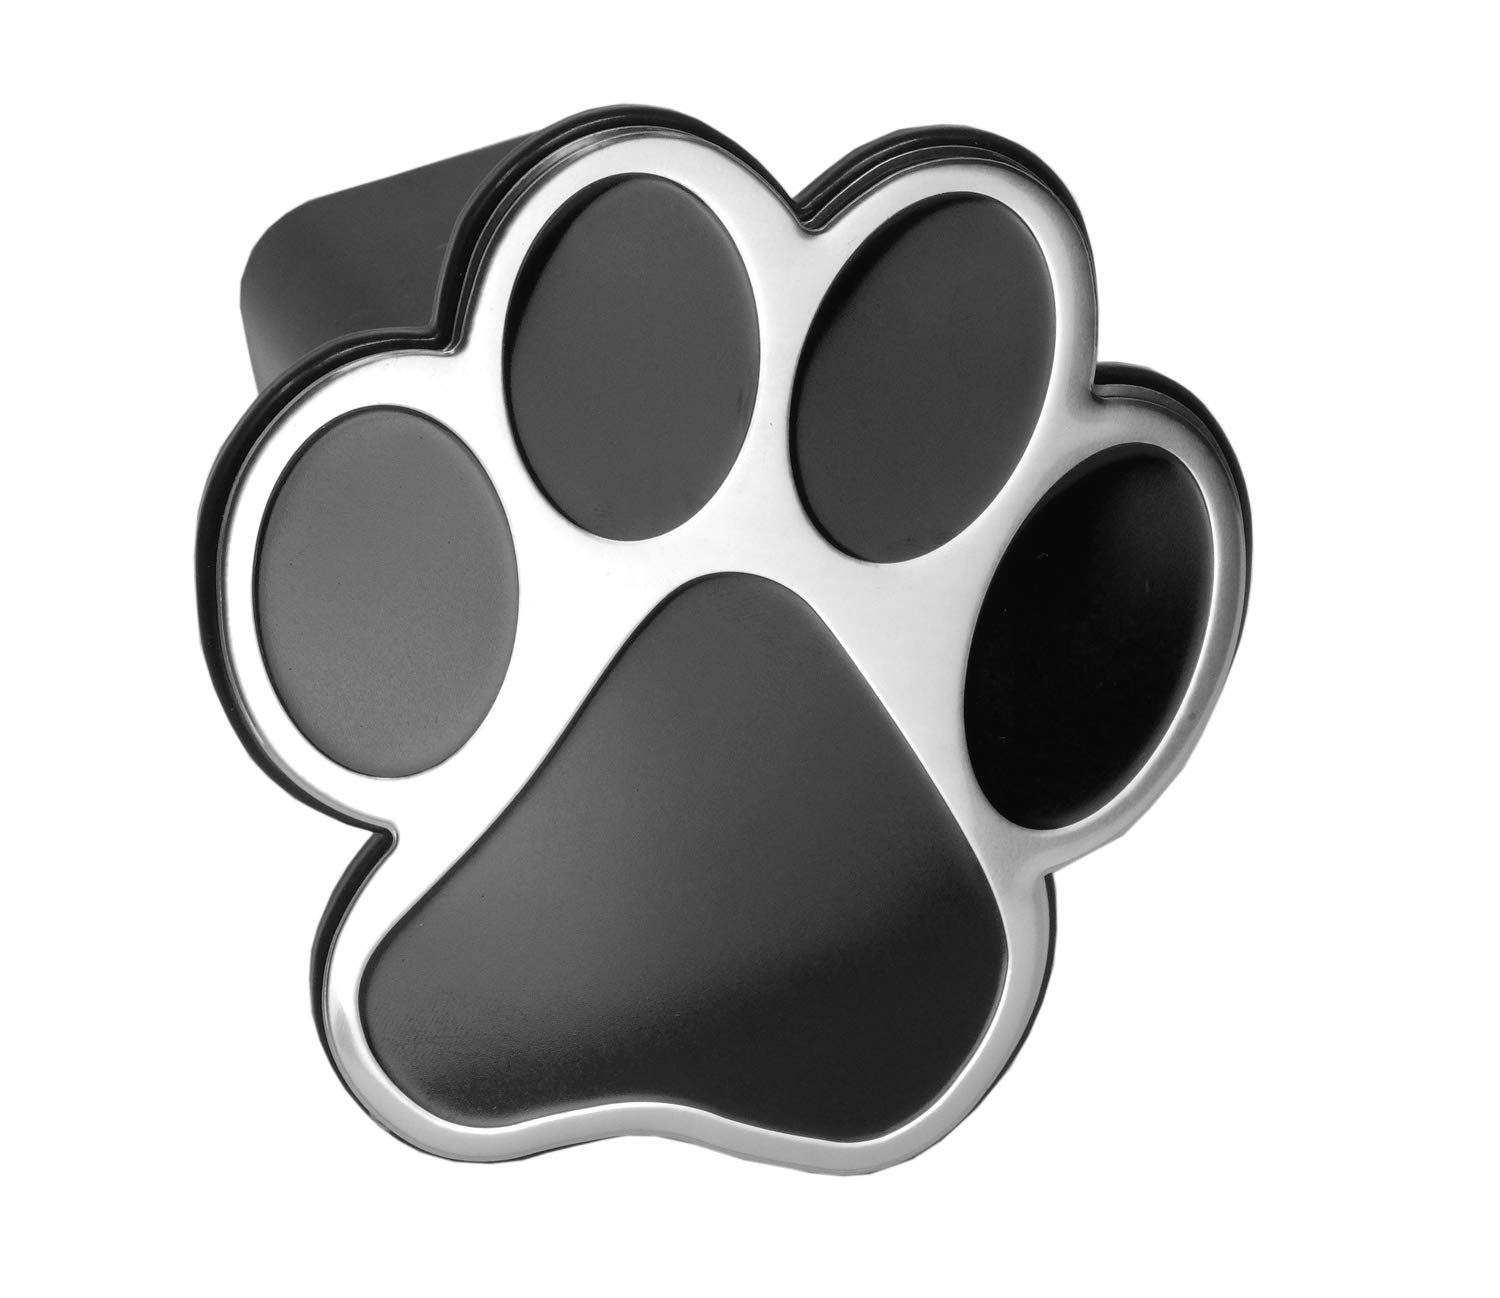 LFPartS Bear Dog Animal Paw Foot Emblem Metal Trailer Hitch Cover Fits 2' Receivers bparts